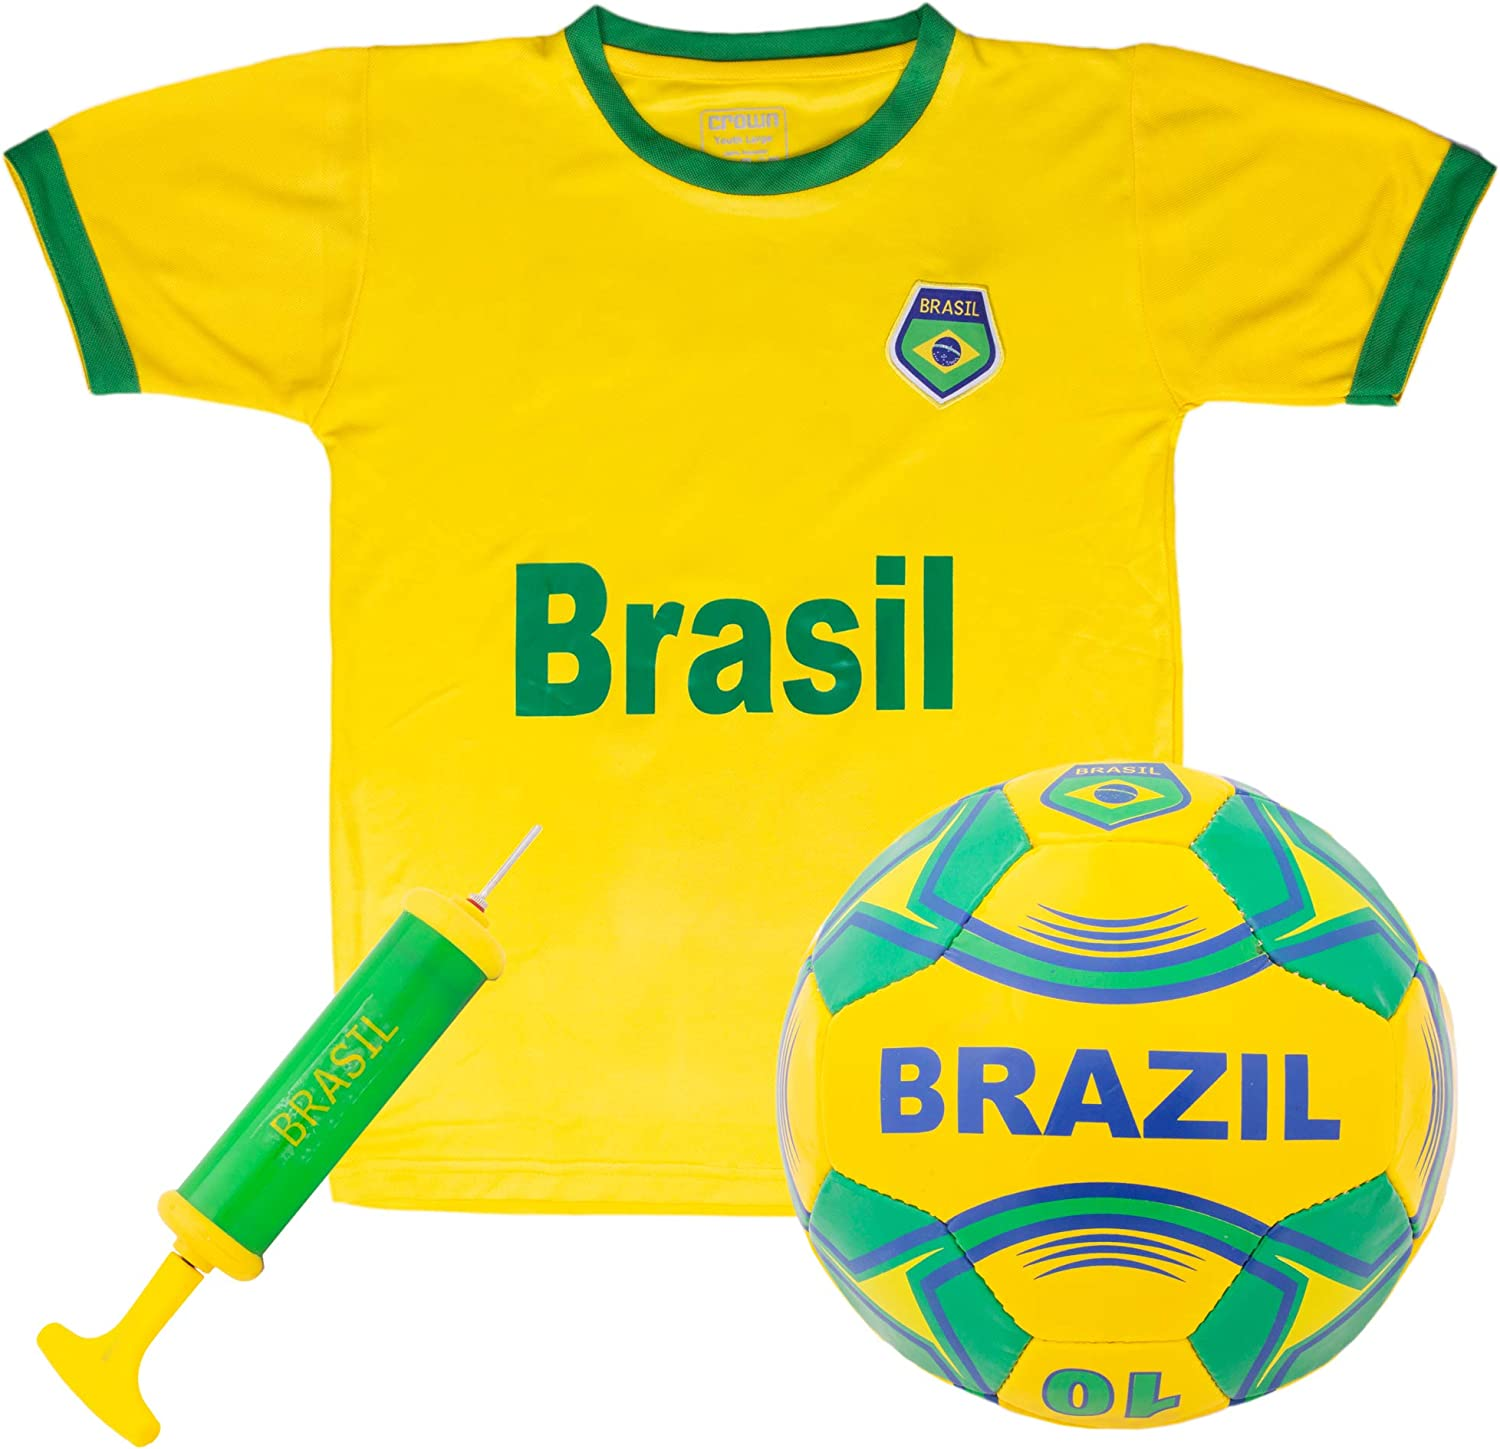 Brazil National Team Kids Soccer Kit | Kit Includes a Jersey, Shorts, and Soccer Ball Adorned with Green and Yellow Design | World Cup Youth Attire, Premium Gift for Soccer/Football Fans